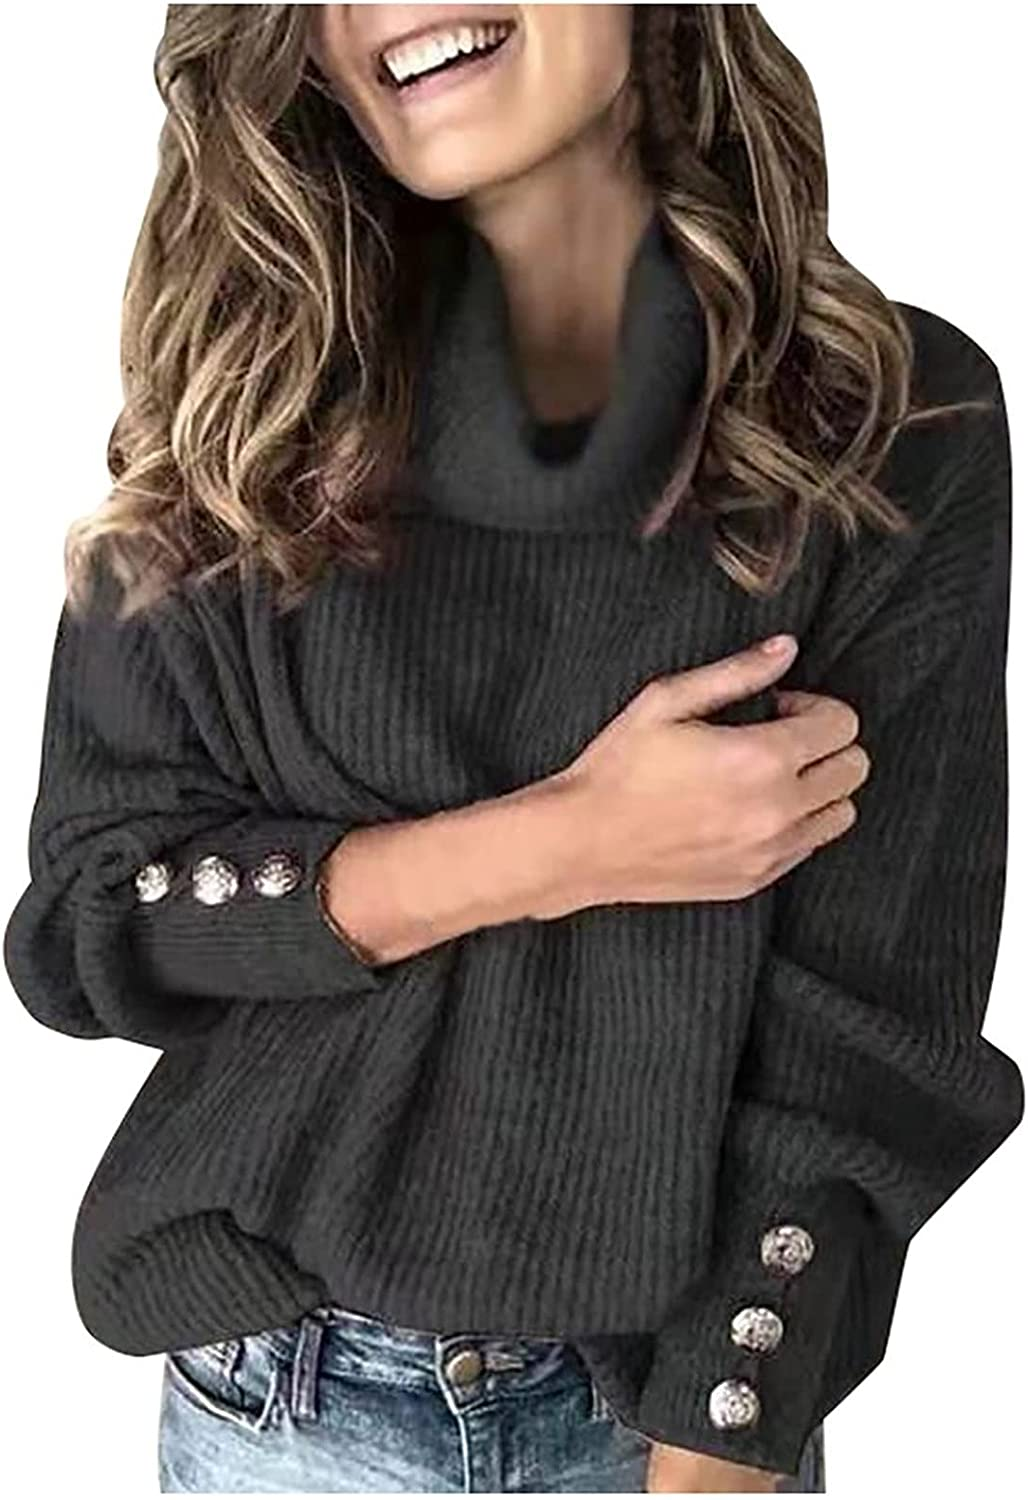 Women's Cowl Neck Button Long Sleeve Knitting Pullover Sweater Winter Warm Wrap Casual Oversize Solid Tops